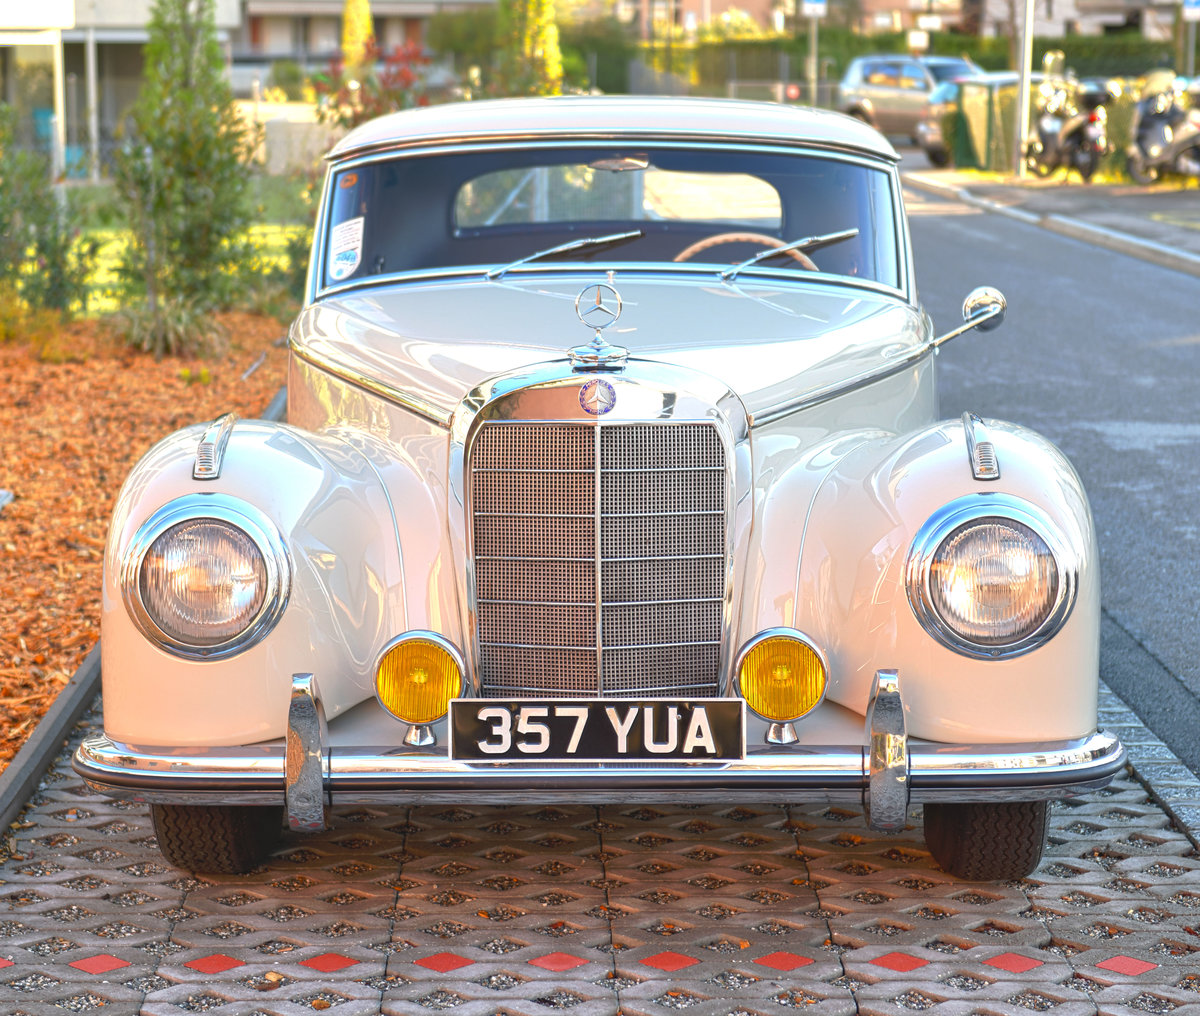 1954 MERCEDES 300S COUPÉ For Sale (picture 2 of 12)